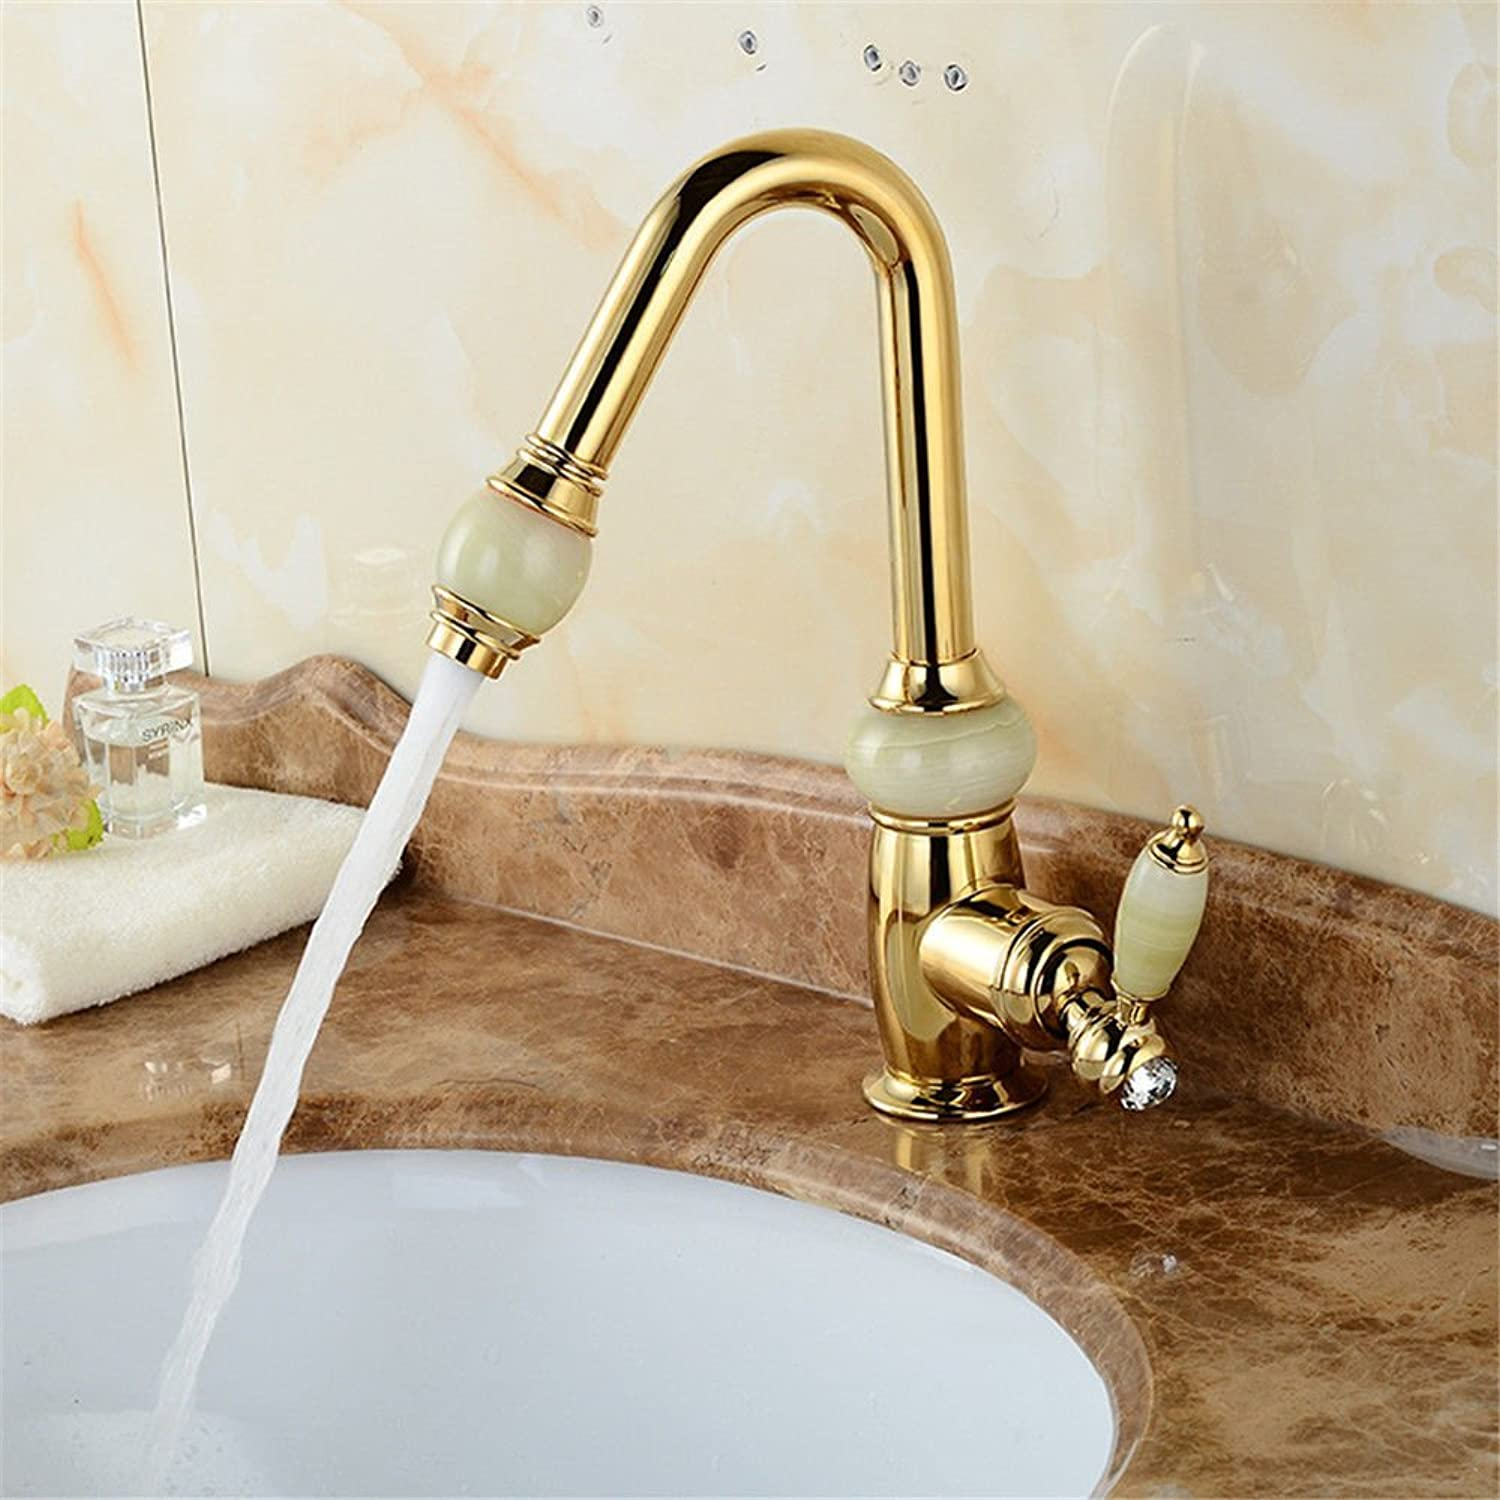 Gyps Faucet Basin Mixer Tap Waterfall Faucet Antique Bathroom Mixer Bar Mixer Shower Set Tap antique bathroom faucet All copper single hole gold plated spring can pull faucet kitchen sink faucet and c